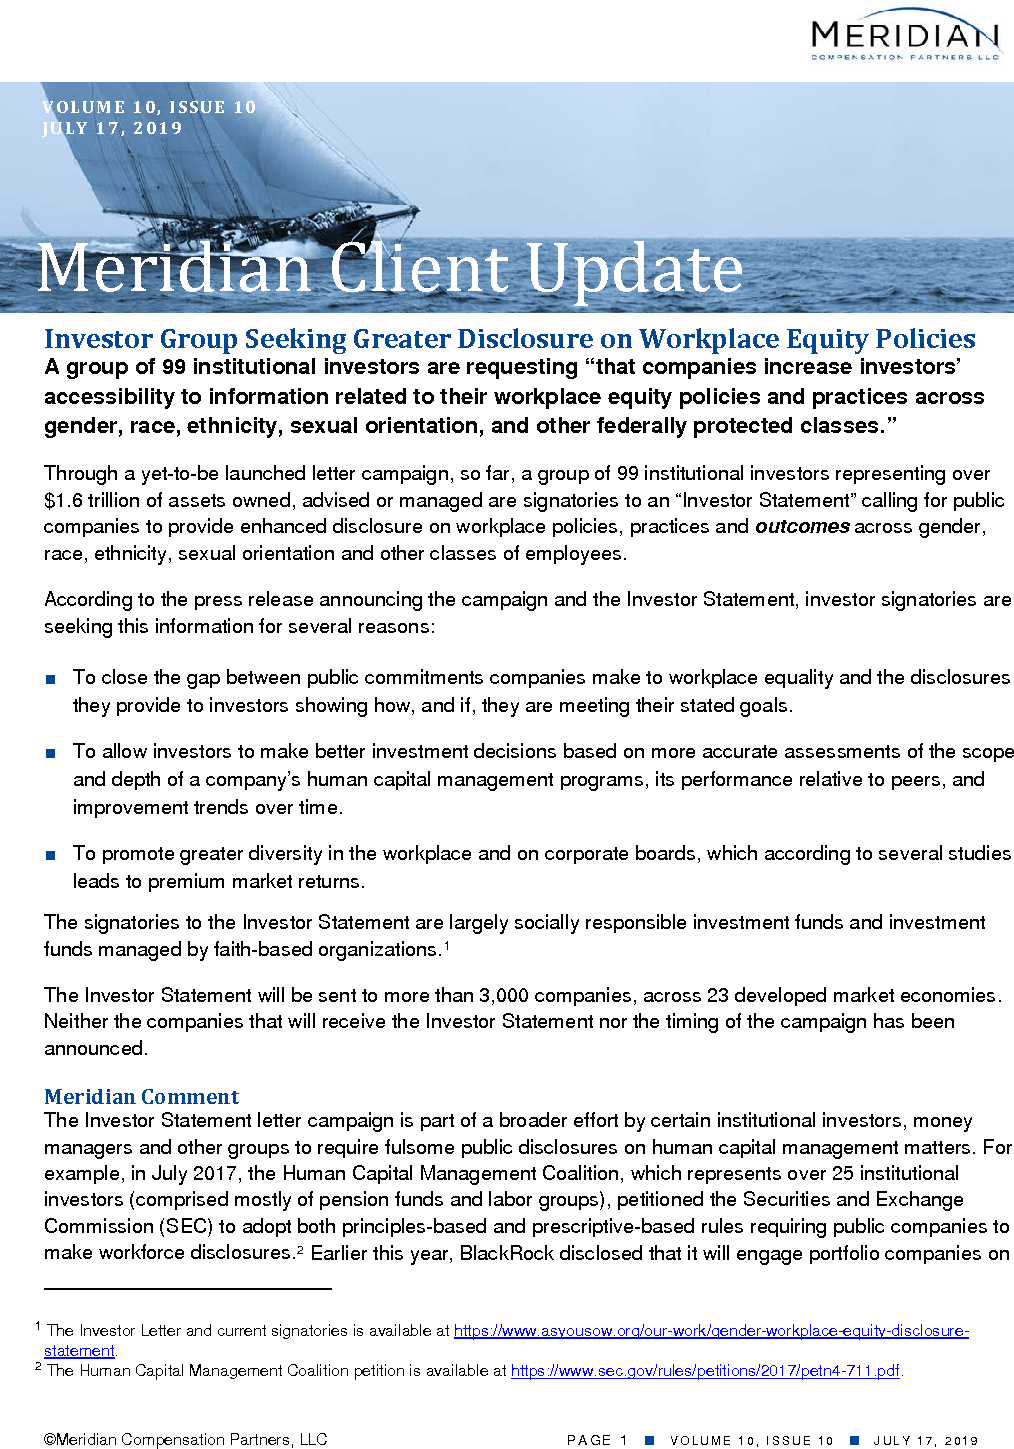 Investor Group Seeking Greater Disclosure on Workplace Equity Policies (PDF)